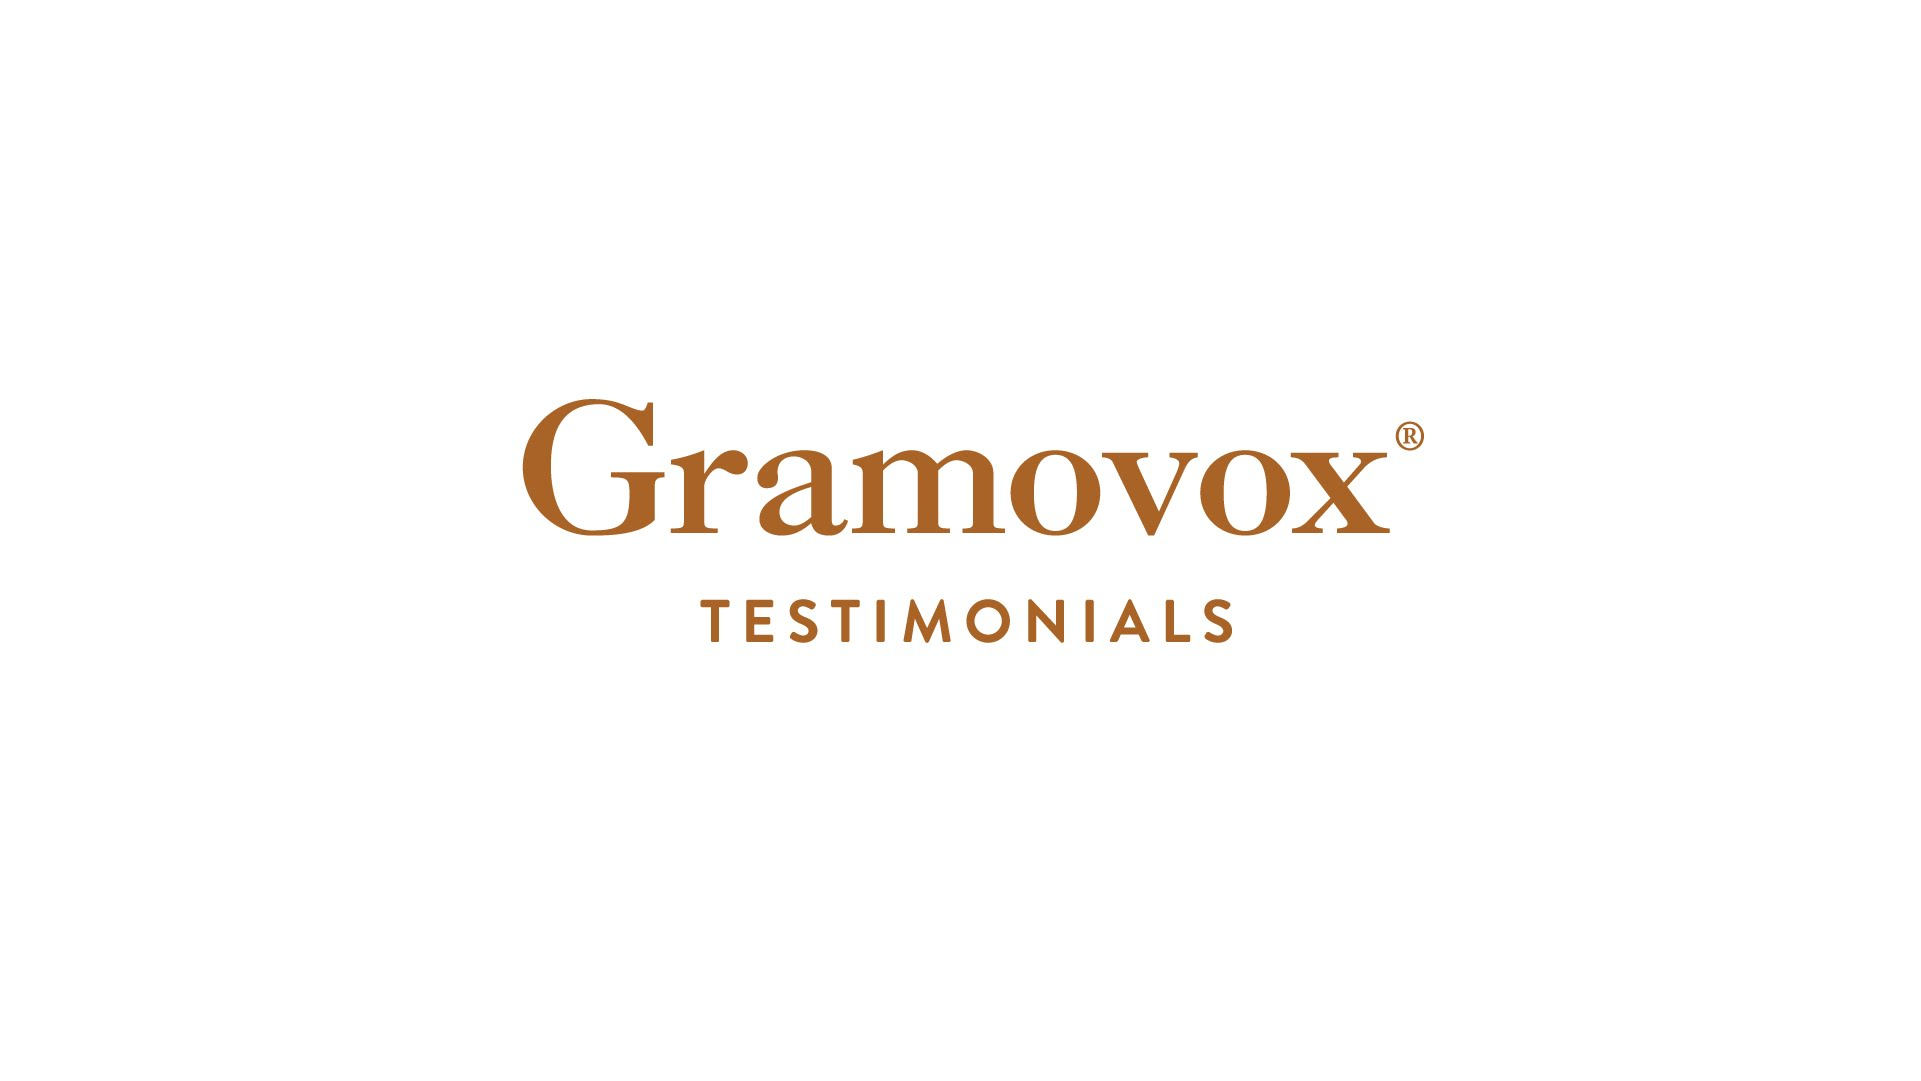 Gramovox For Sale Coupons & Promo codes